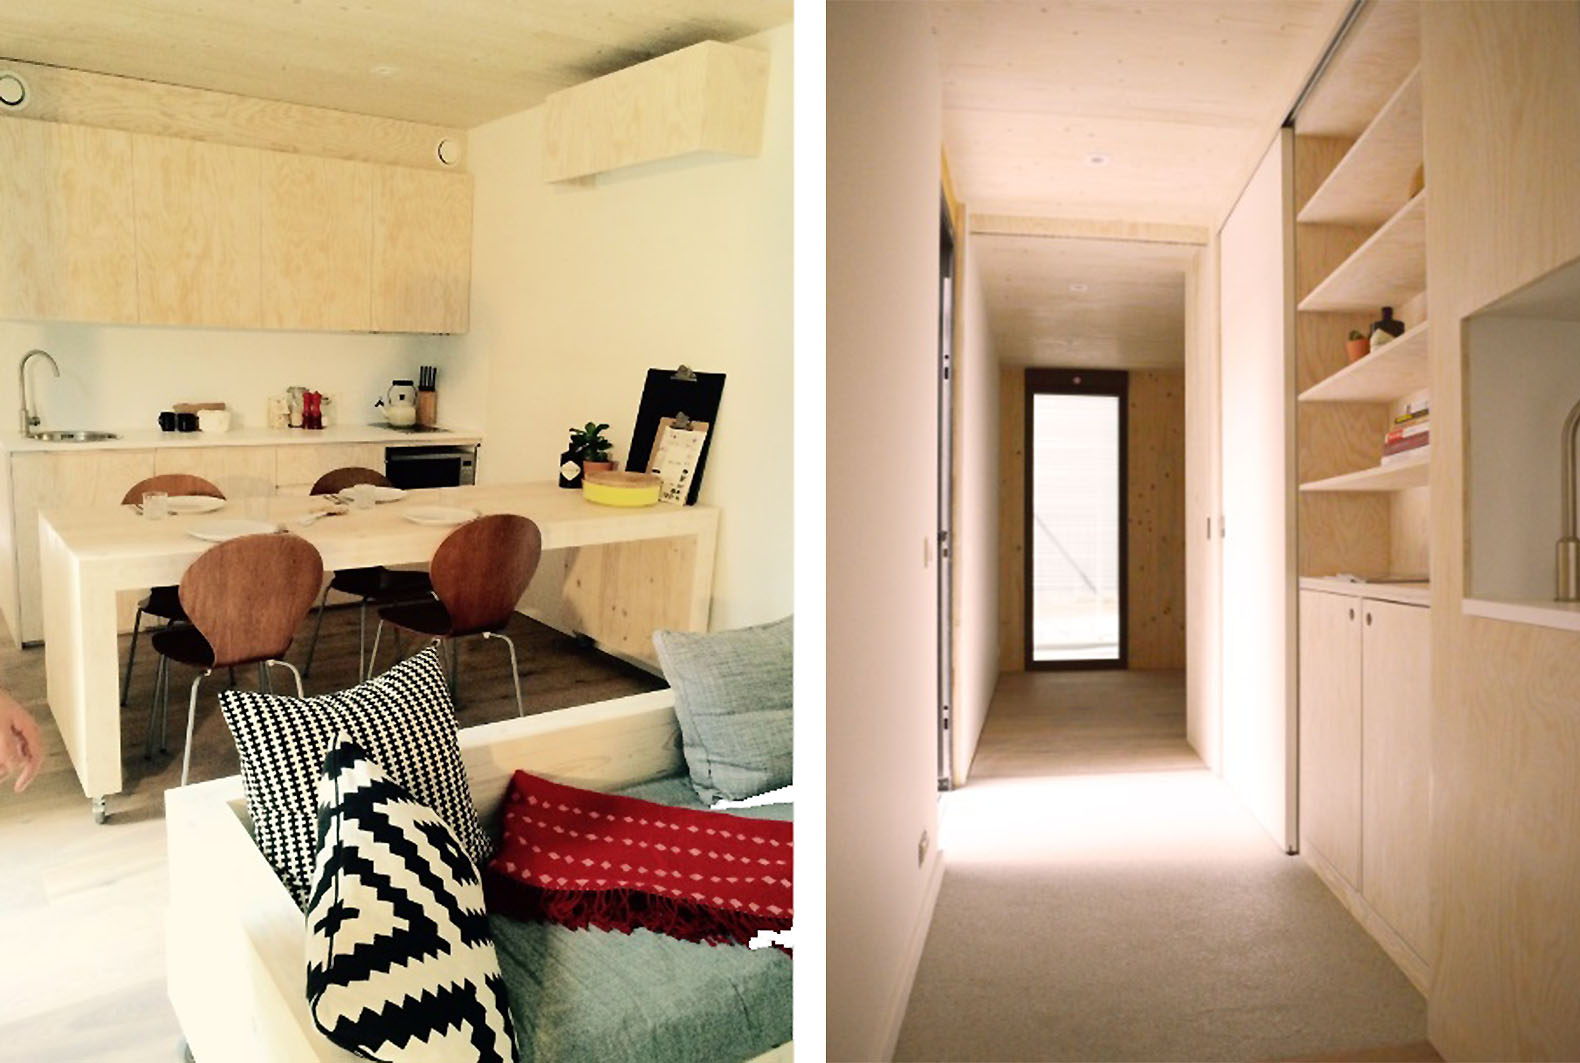 Skilpod micro houses are zero or plus energy homes you can rent in Belgium